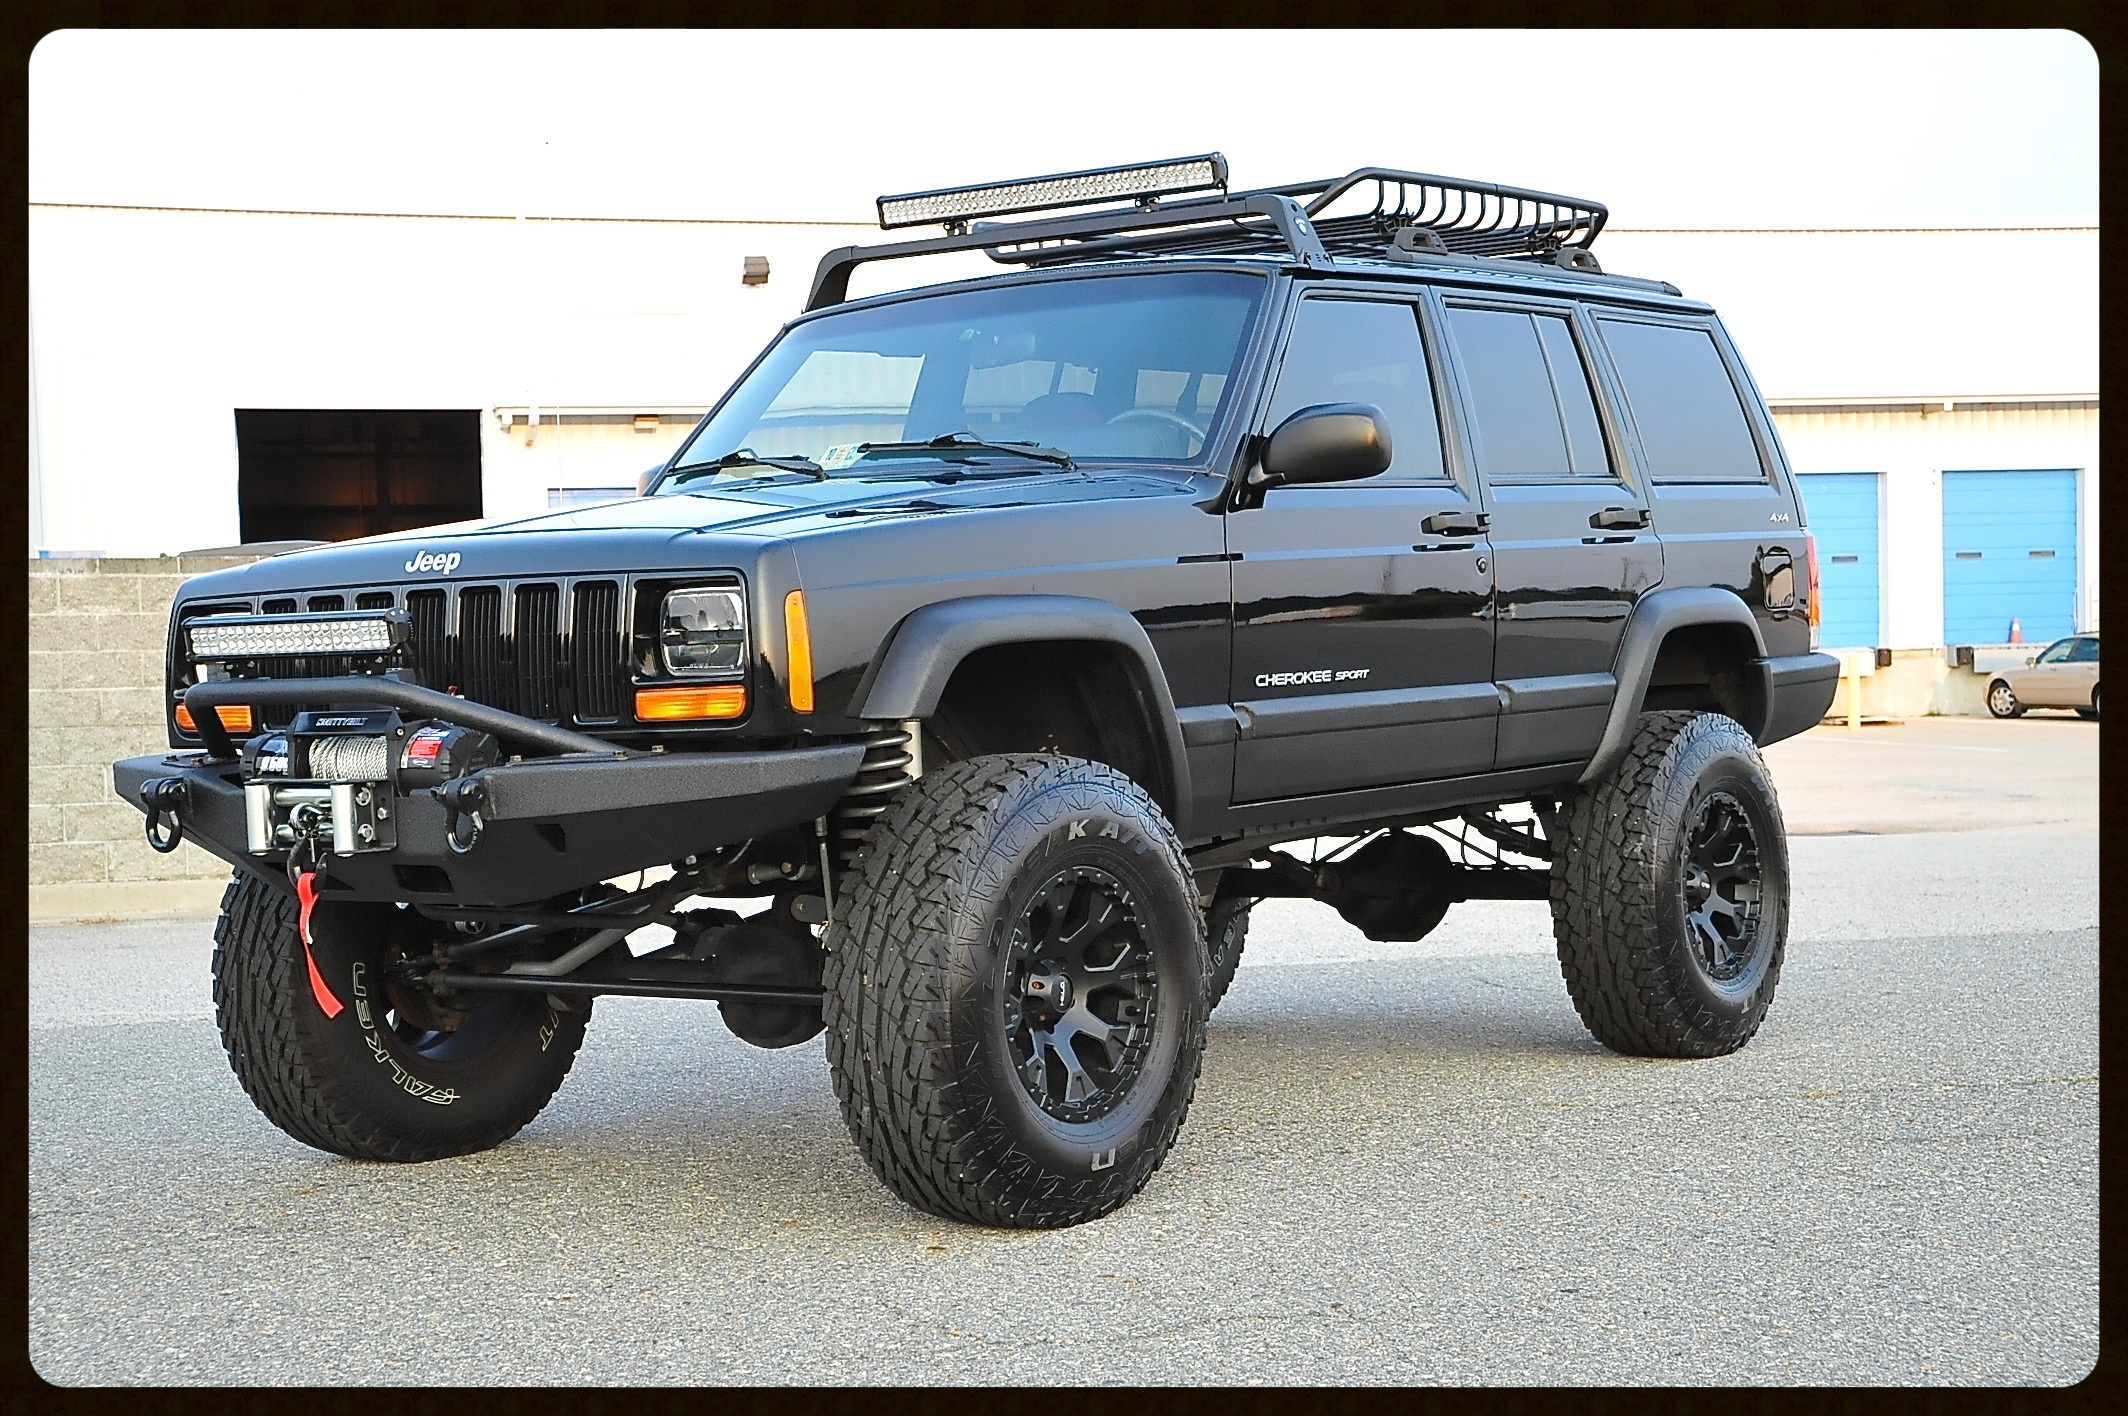 This Cherokee Sport has our Stage 5 Package. Full Rubicon Express 5.5 Long Arm Lift, Tom Woods Drive Shafts, LED Lighting, Slip Yoke, and Much More.